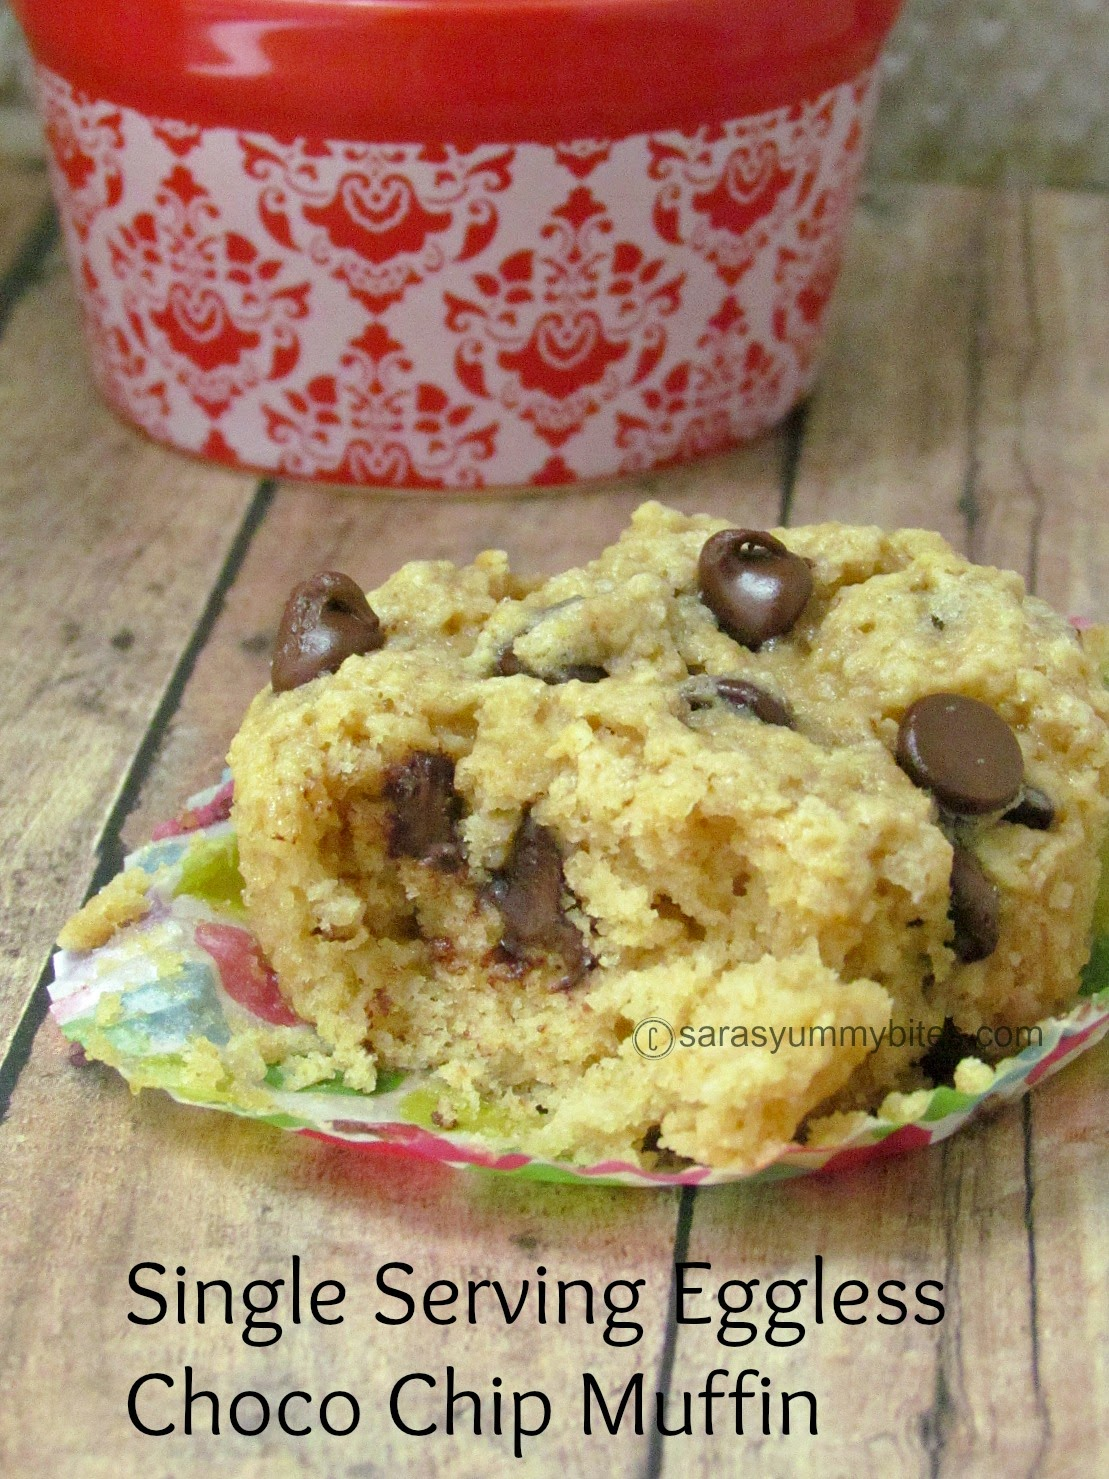 Single Serving Eggless Choco Chip Muffin